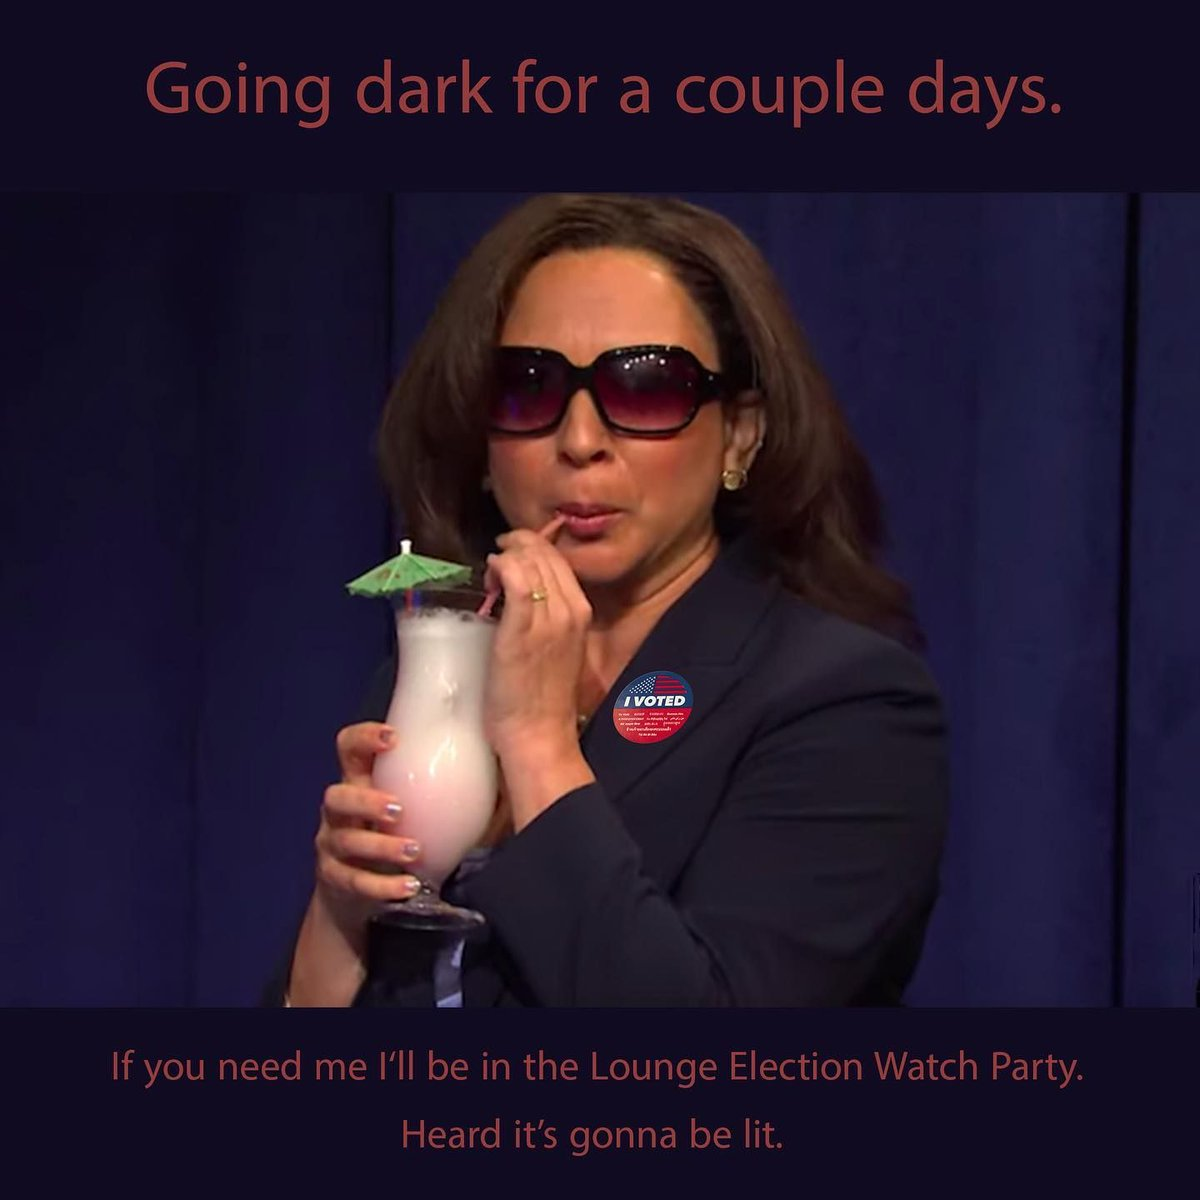 If you are not currently subscribed, now is your chance to join the Co-Conspirators Lounge and hang out with us. As a member, you can join us tonight for the watch party PLUS get access to our monthly Masterclasses and check-in/Q&A calls, and more. https://t.co/ysg3q1CnZF https://t.co/P2yKcu7sj9